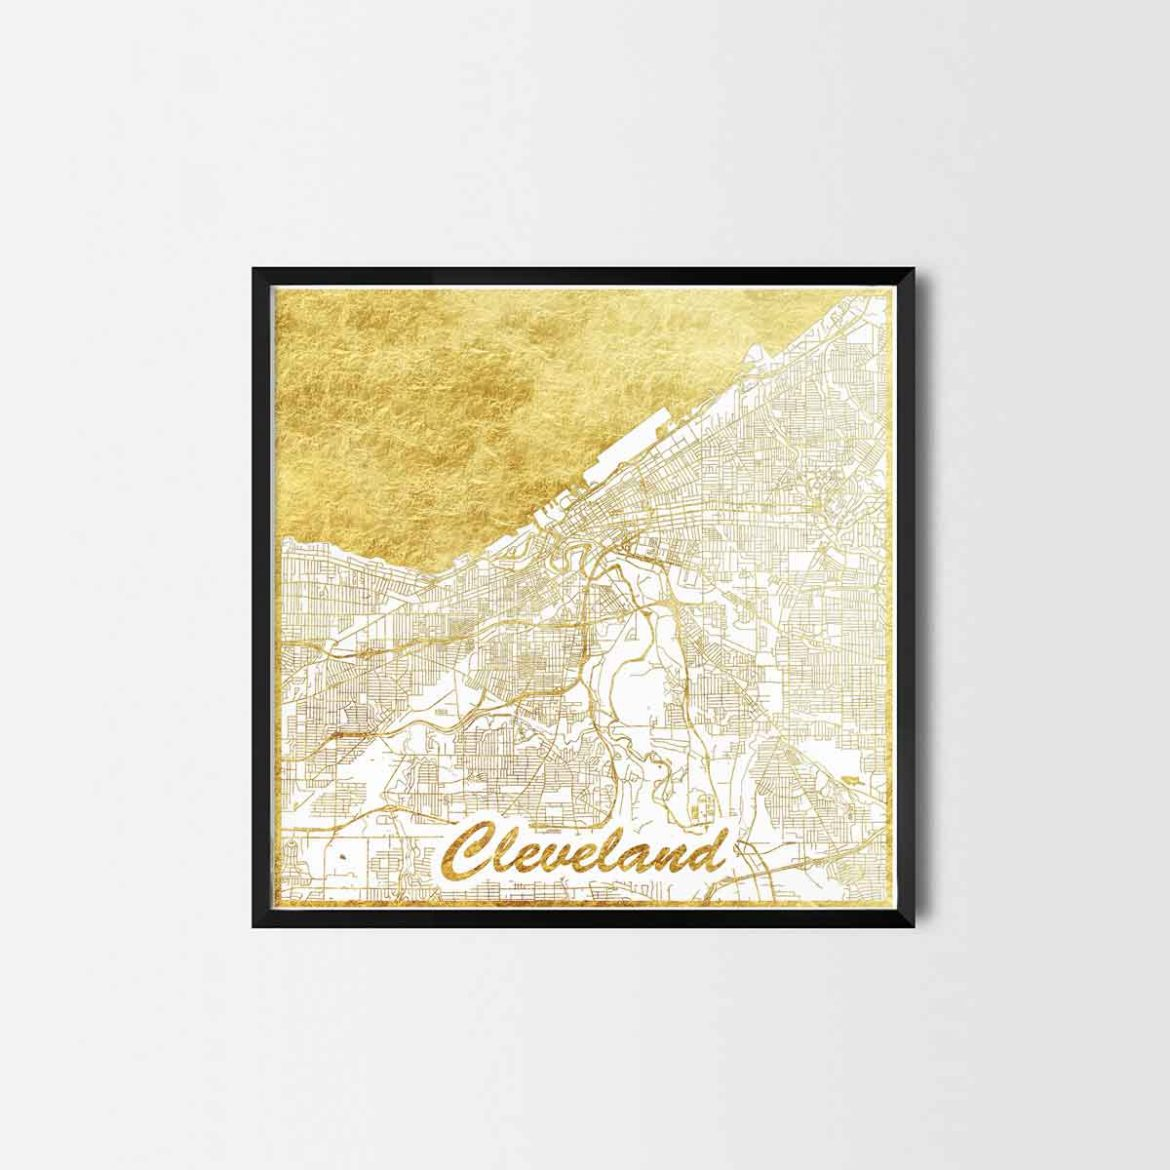 Cleveland gift - Map Art Prints and Posters, Home Decor Gifts